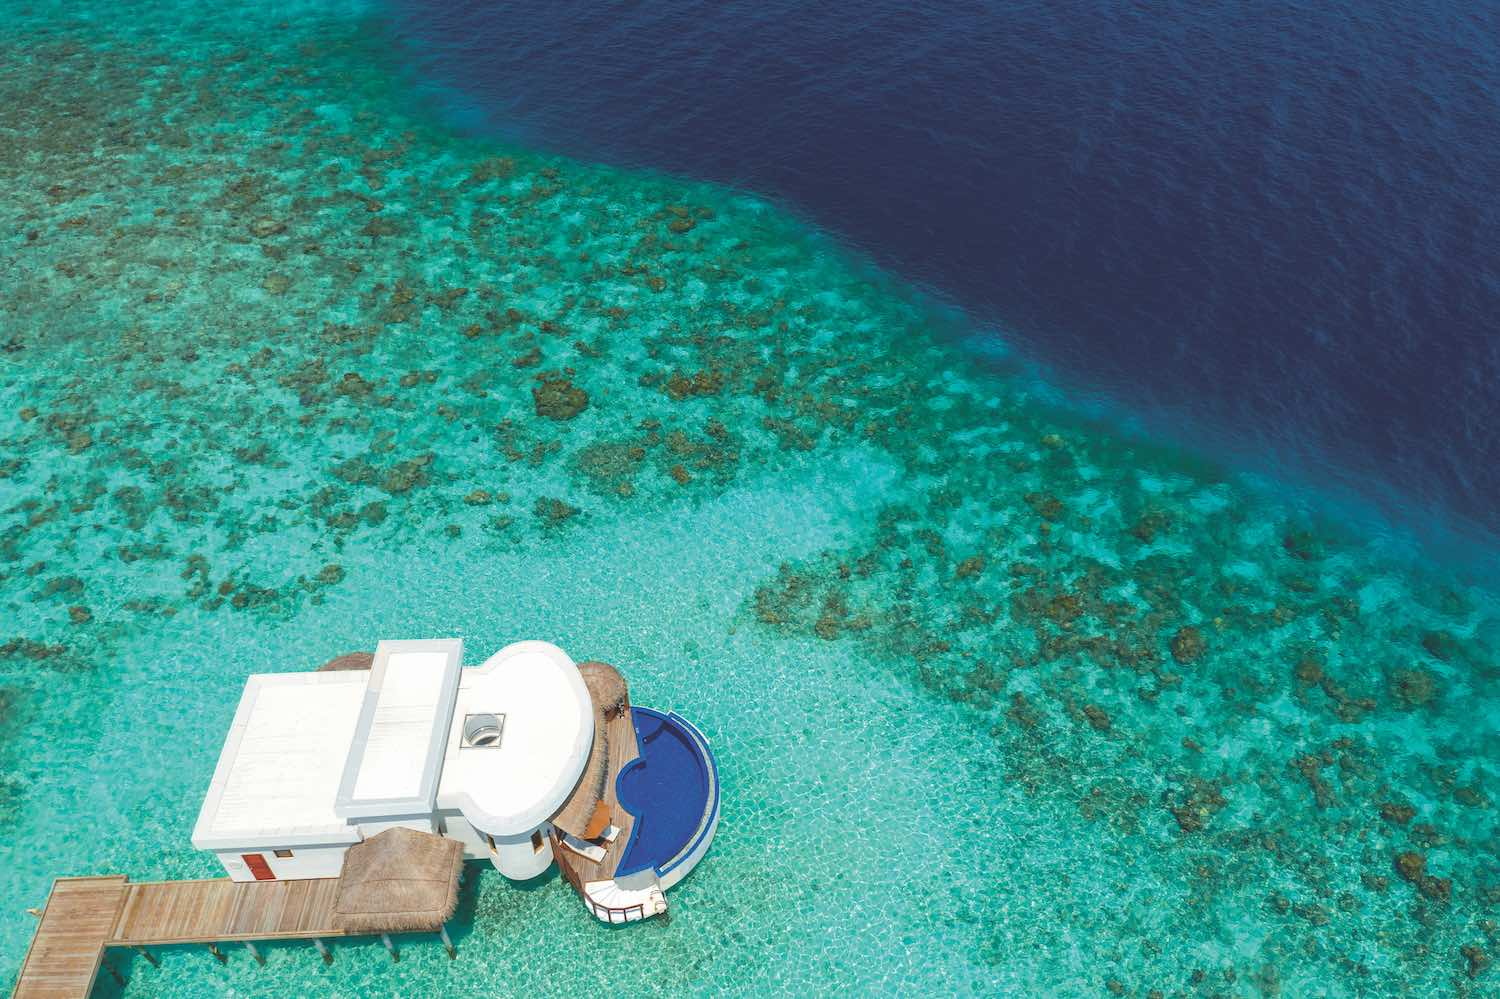 maldives-oblu-select-at-sangeli-honeymoon-water-suite-with-pool-6-holiday-honeymoon-vacation-invite-to-paradise.jpg